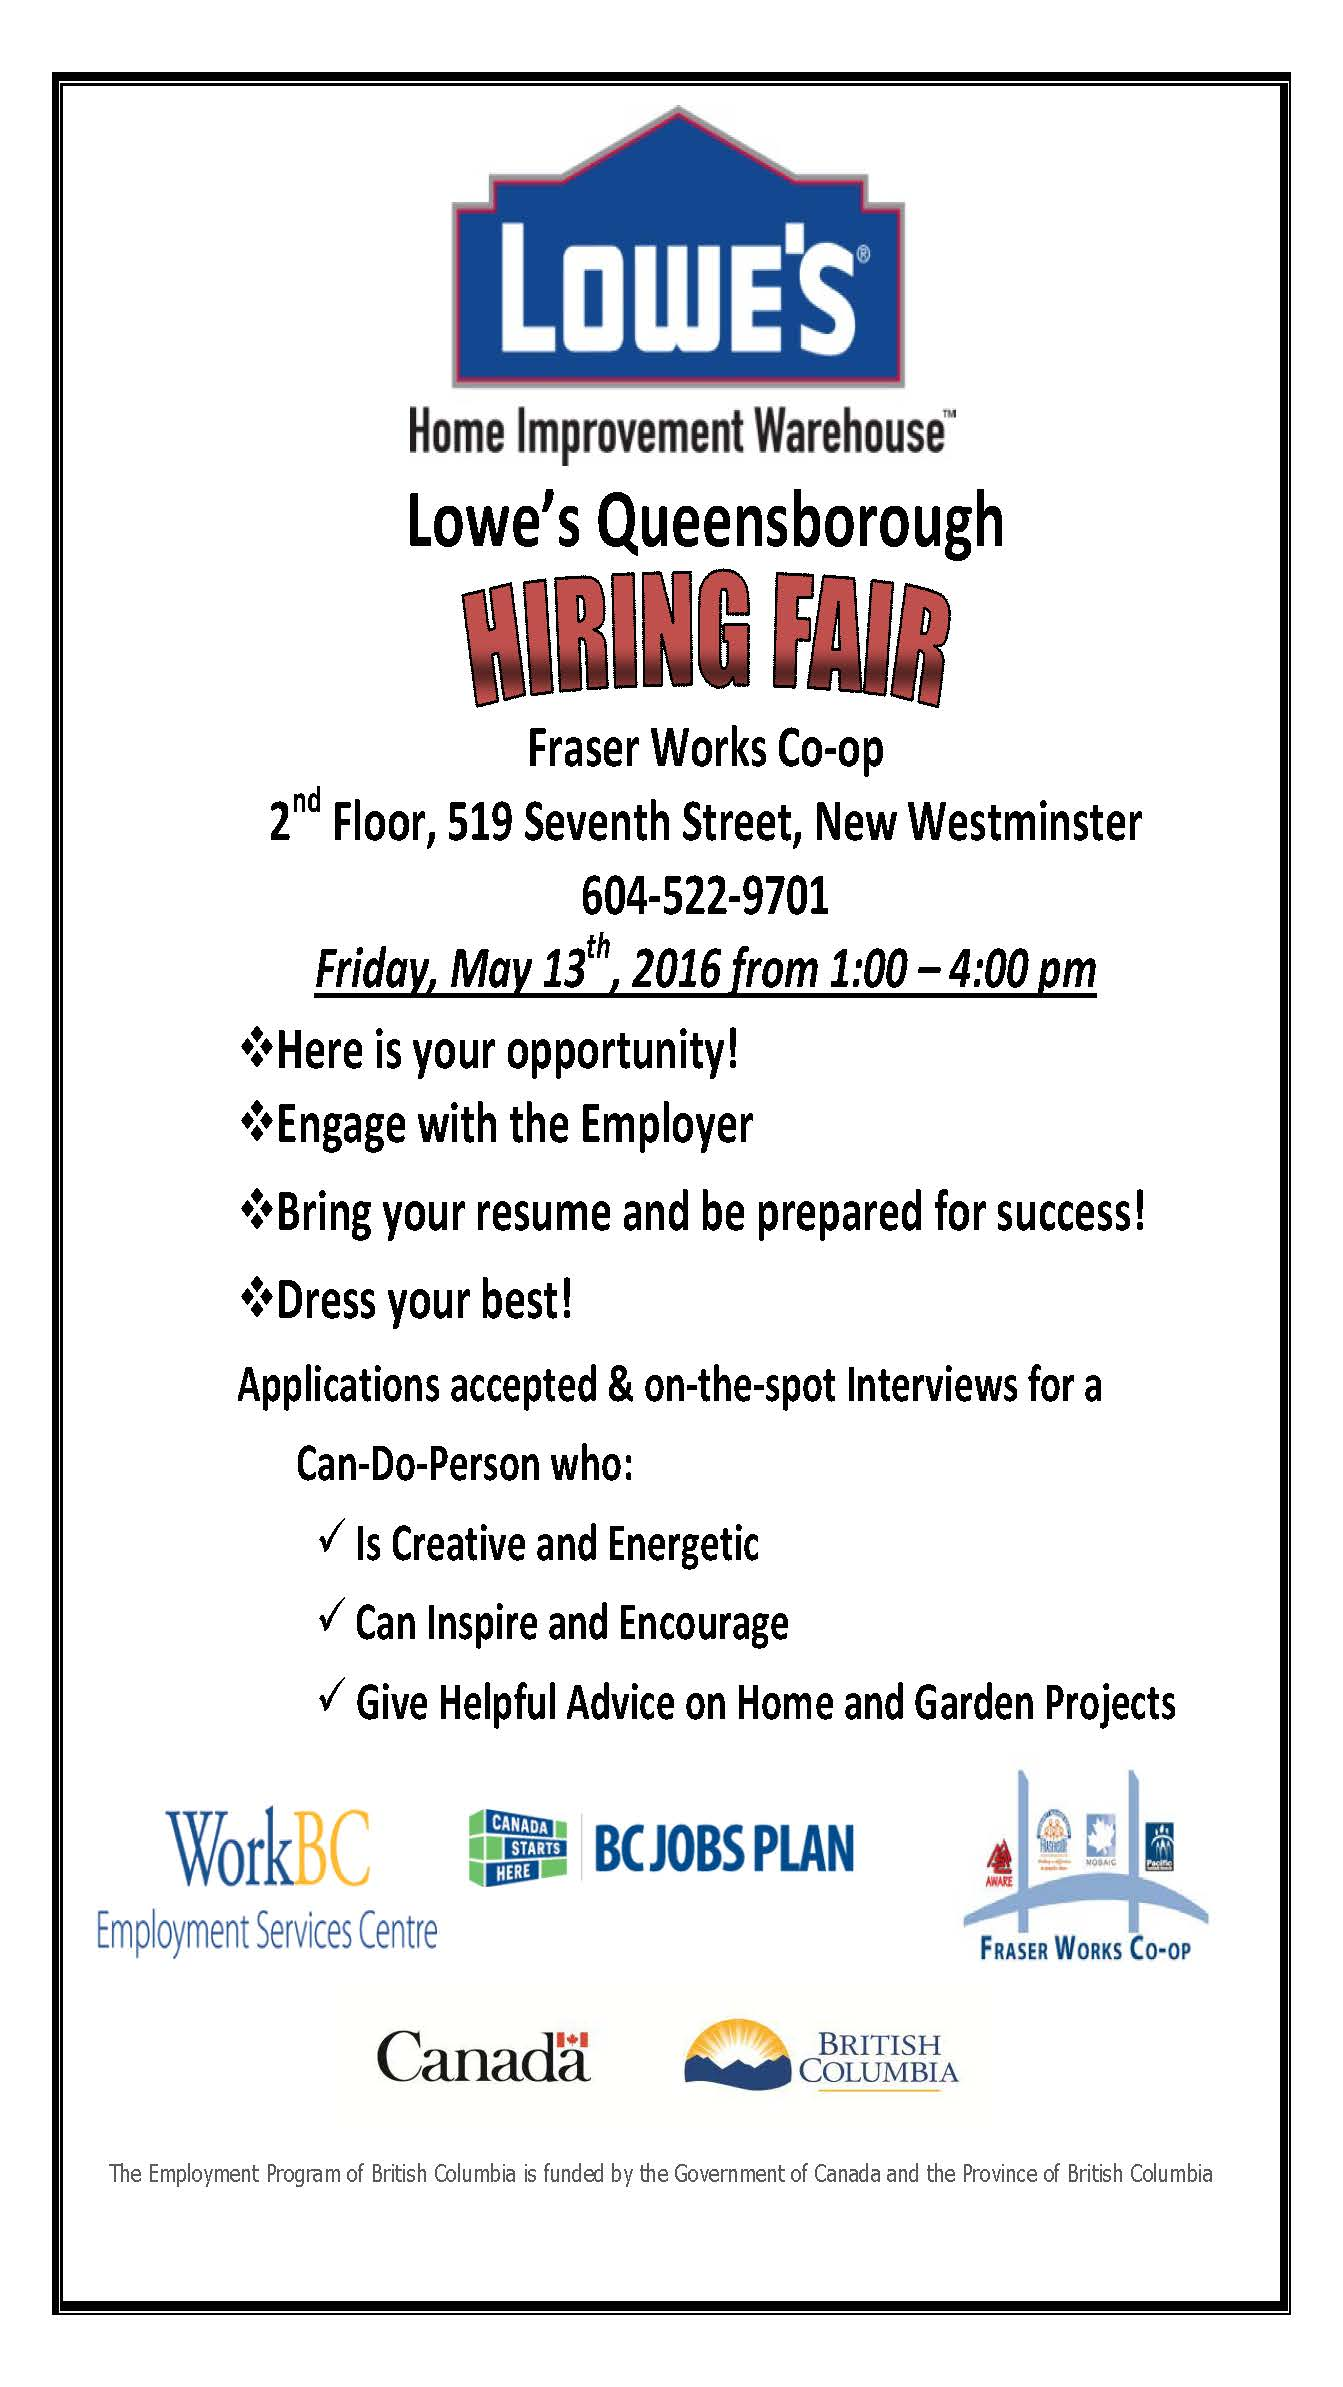 Charming Yes, Loweu0027s In Queensborough Are Hiring. There Are More Than 10 Job Openings!!  We Are Very Keen To Get You Hired, So Please Visit Fraser Works Cooperative  ...